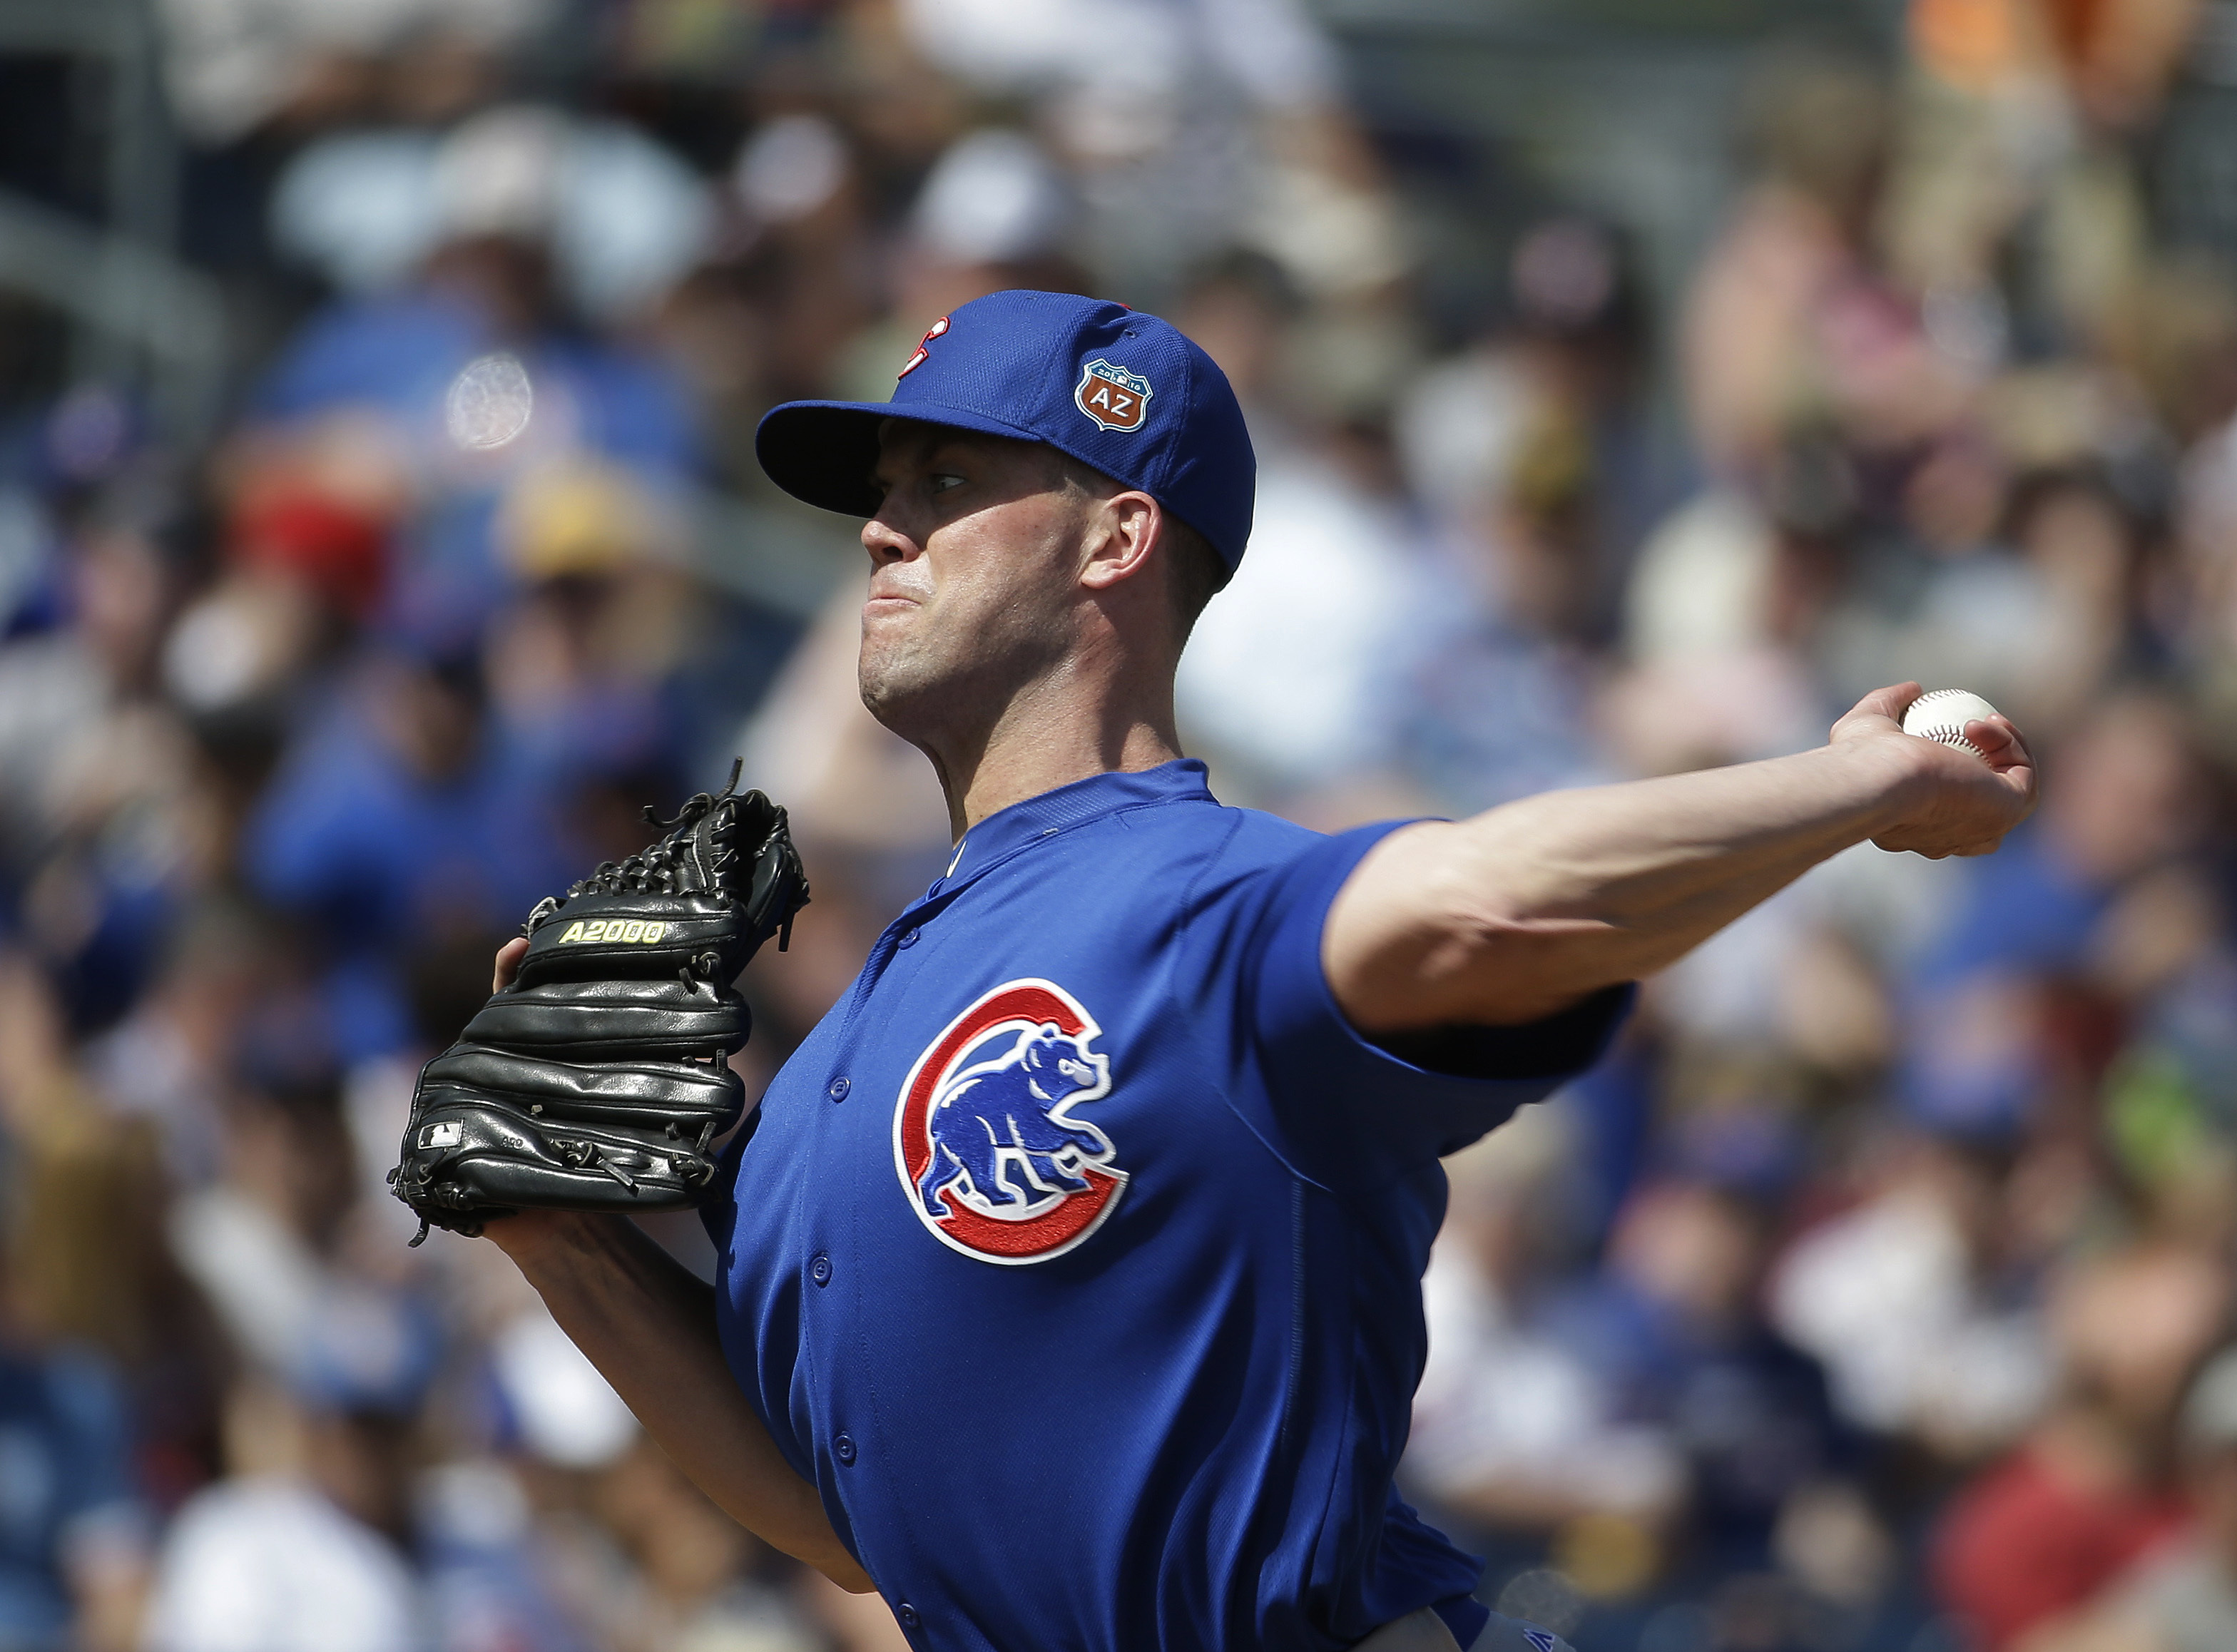 Chicago Cubs' Clayton Richard throws during the first inning of a spring training baseball game against the San Diego Padres on Tuesday, March 15, 2016, in Peoria, Ariz. (AP Photo/Darron Cummings)